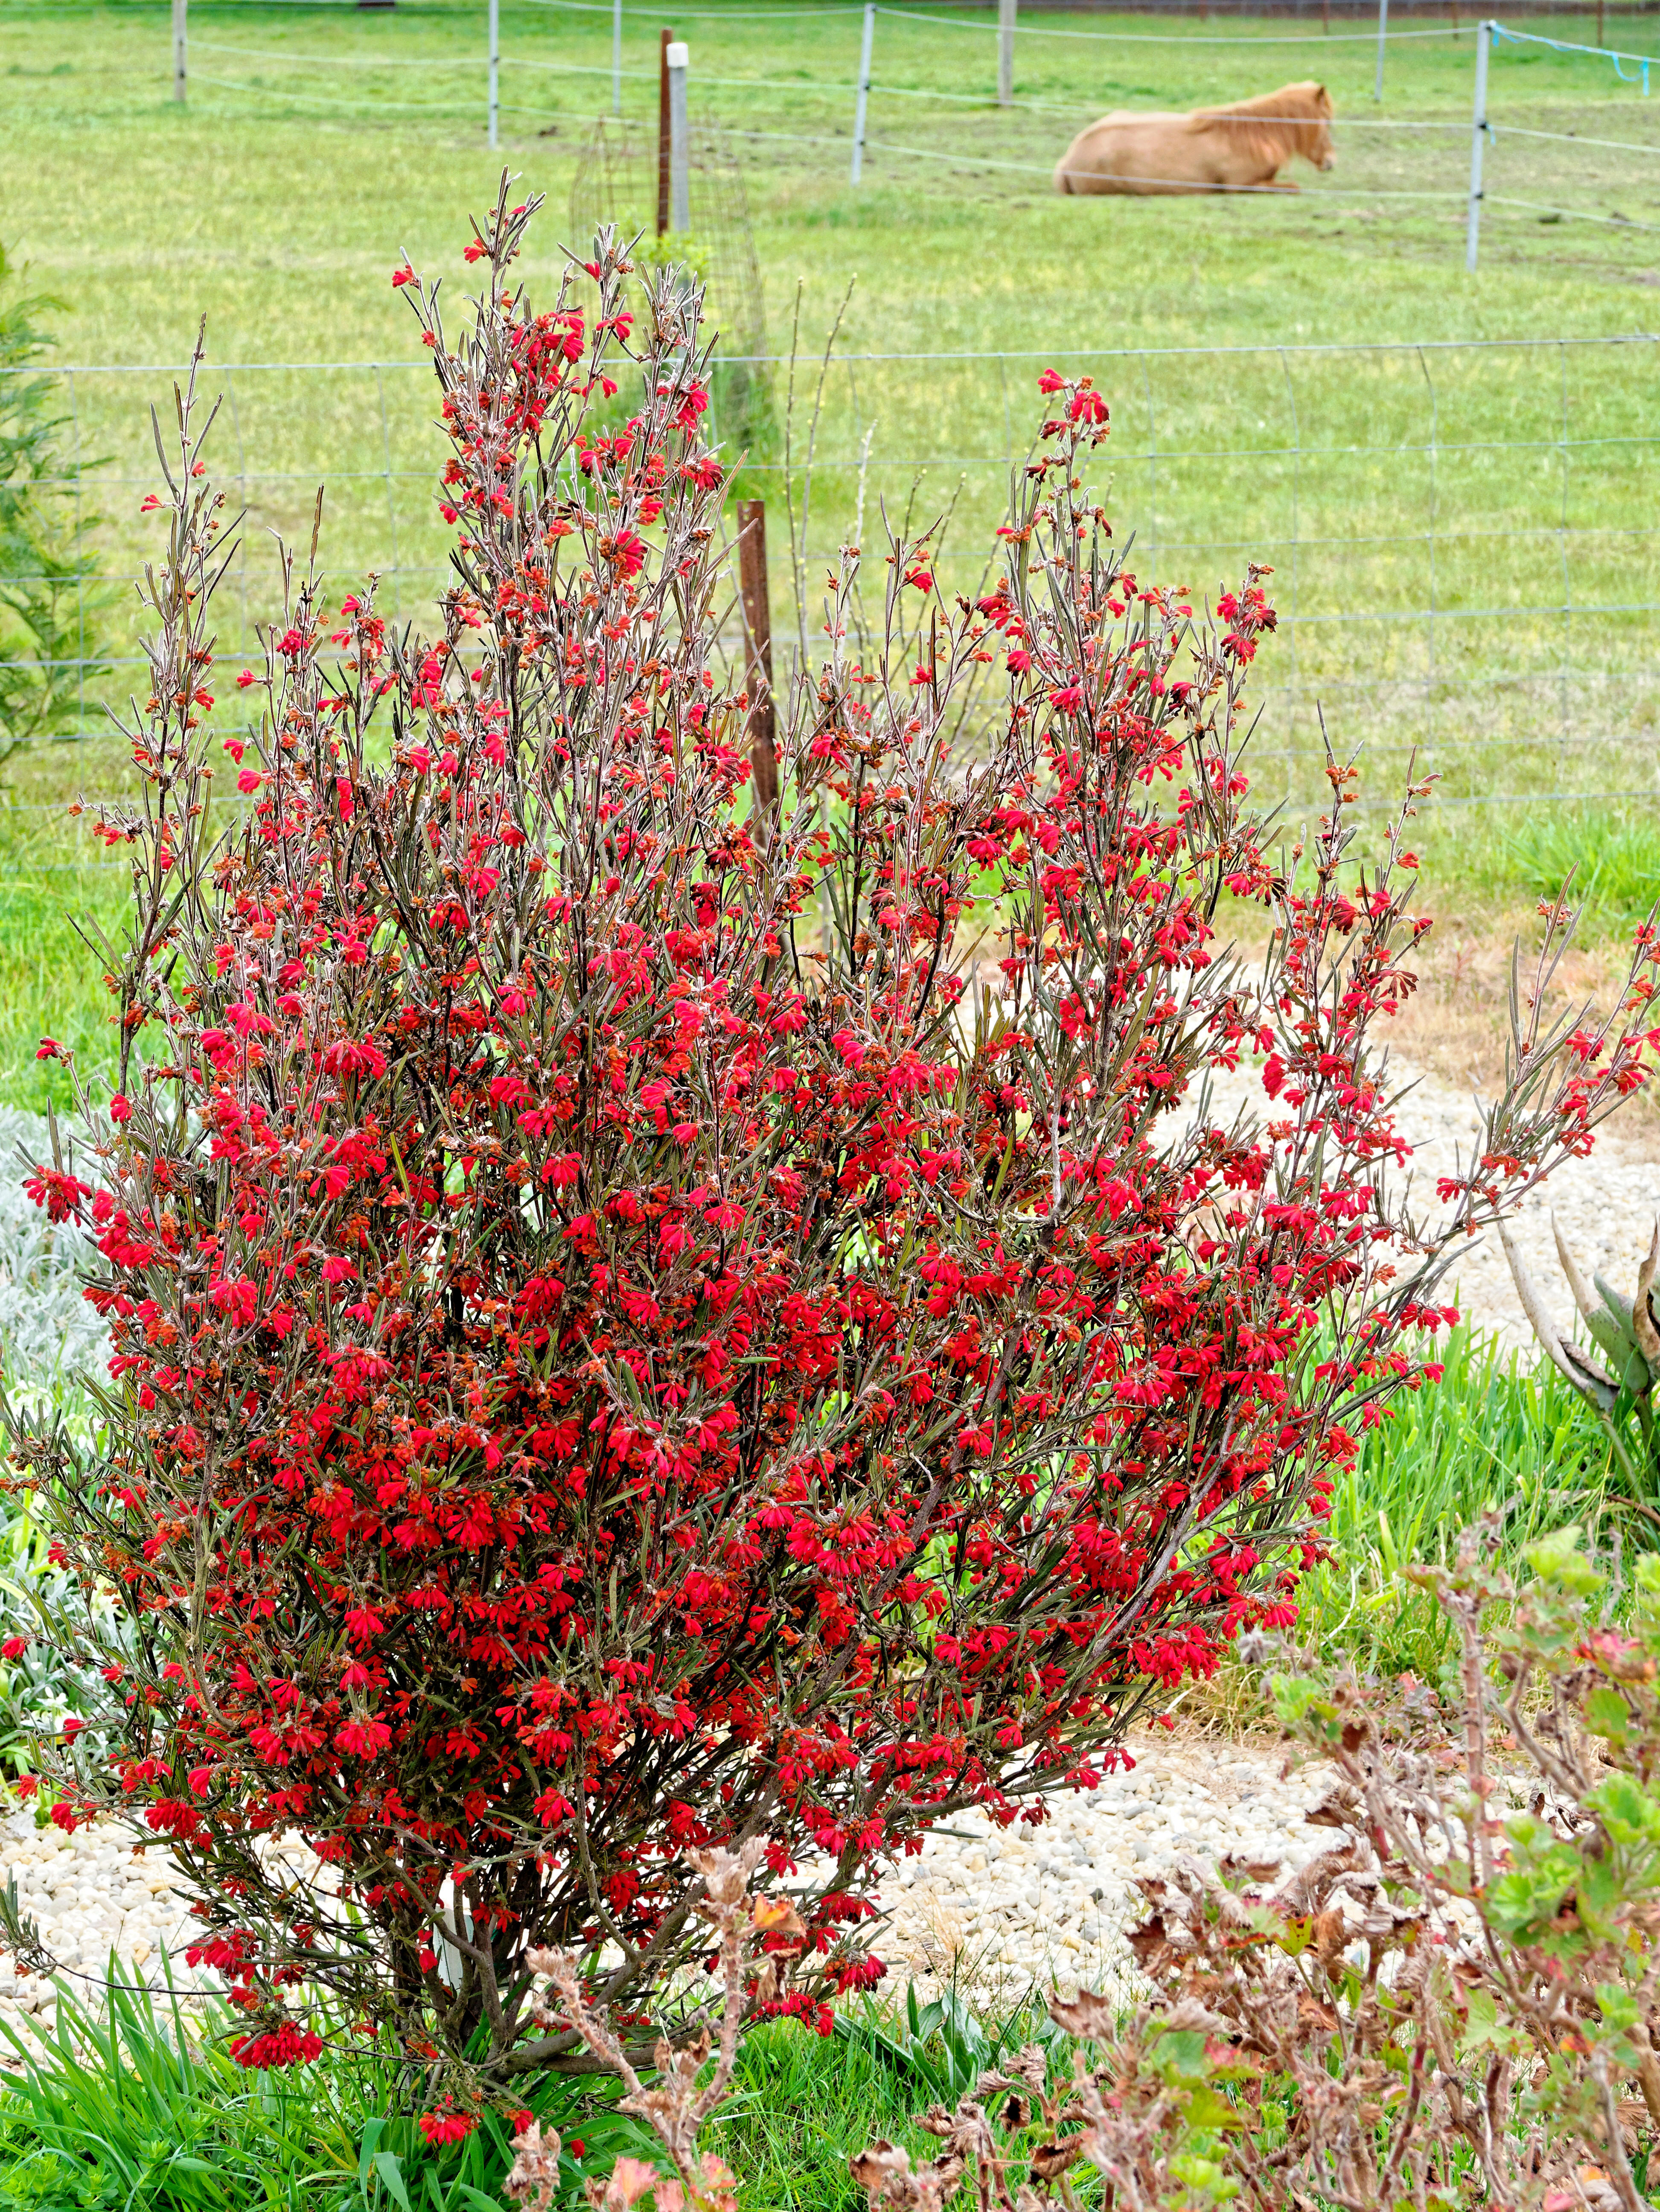 This should be Grevillea-2.jpeg.  Is it missing?